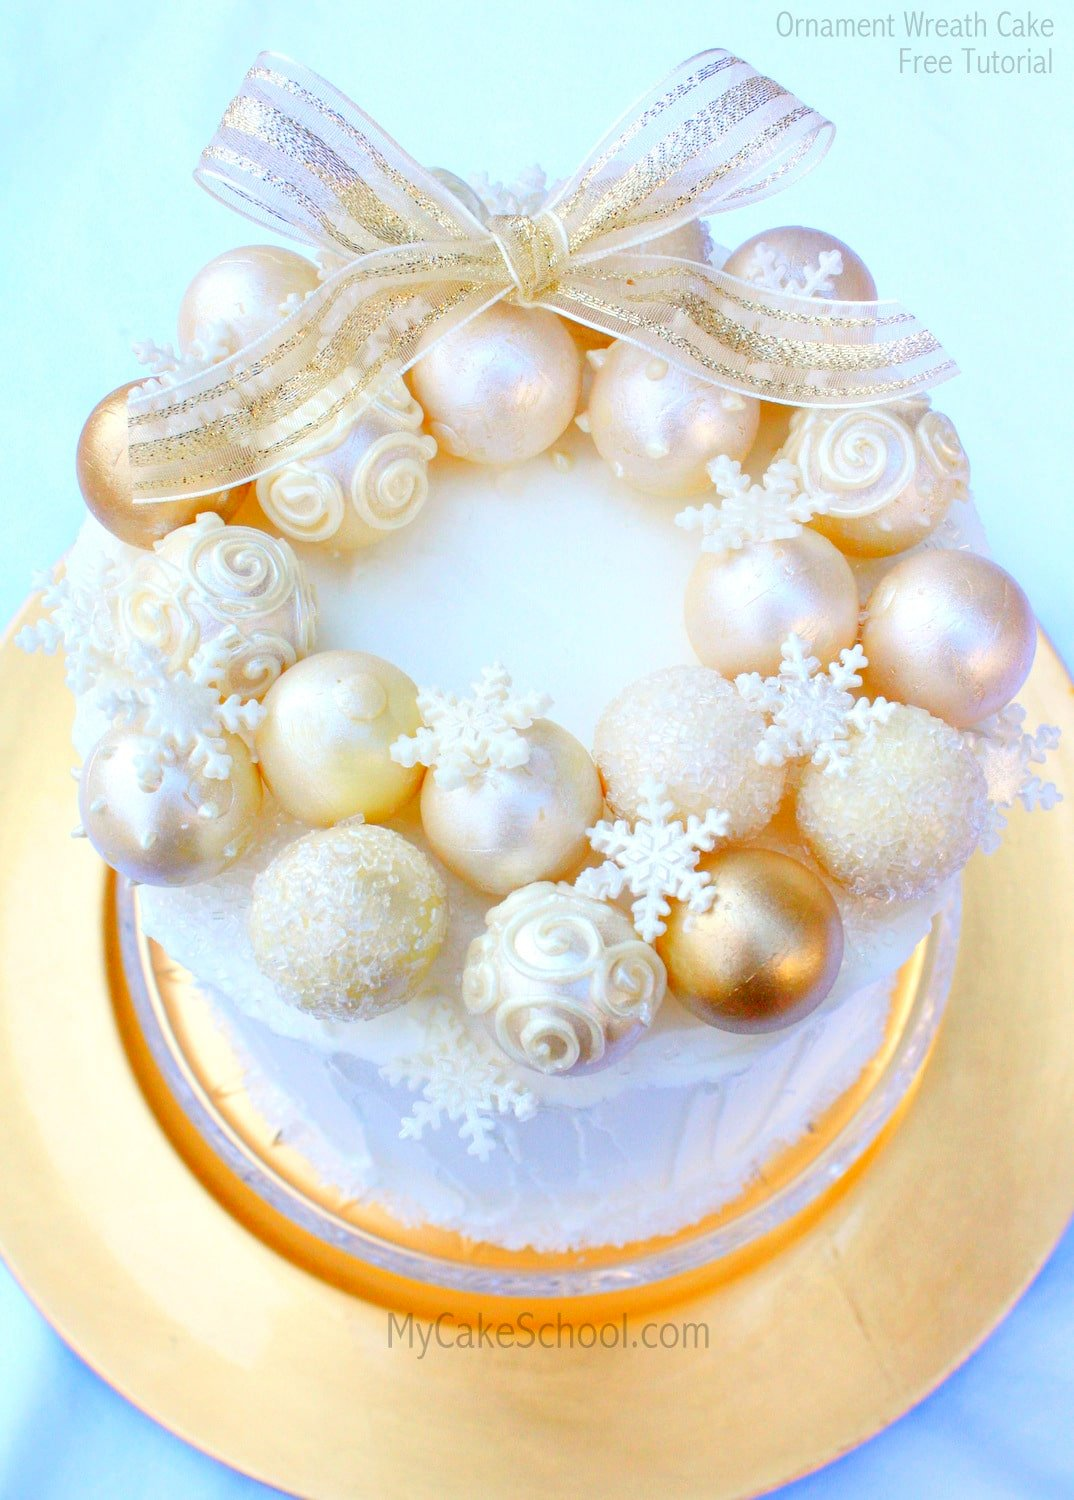 Elegant Ornament Wreath Cake- Free Tutorial by MyCakeSchool.com!